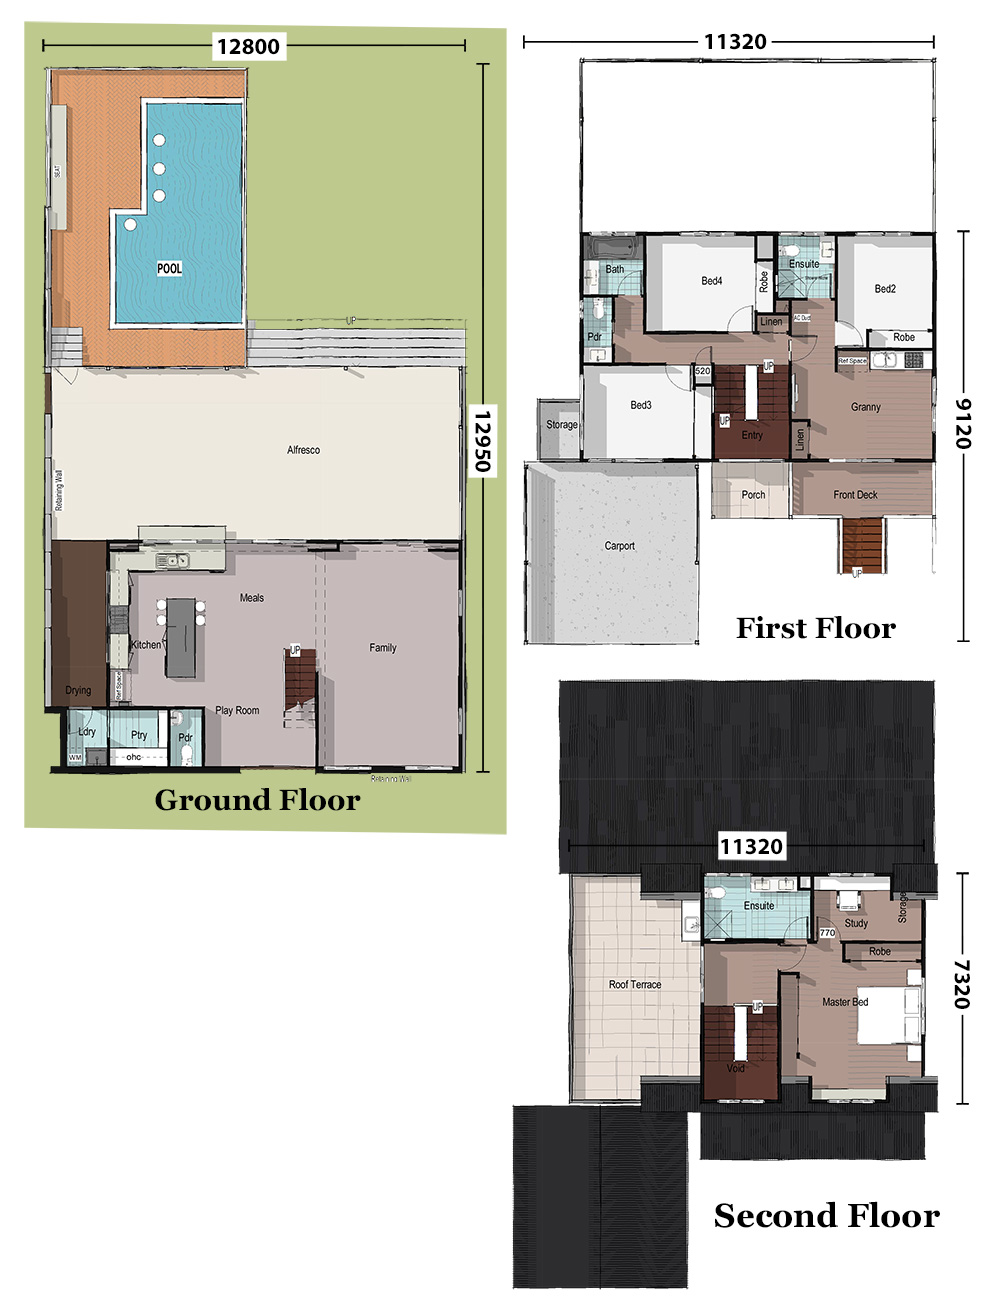 Blue Gum, Floorplan